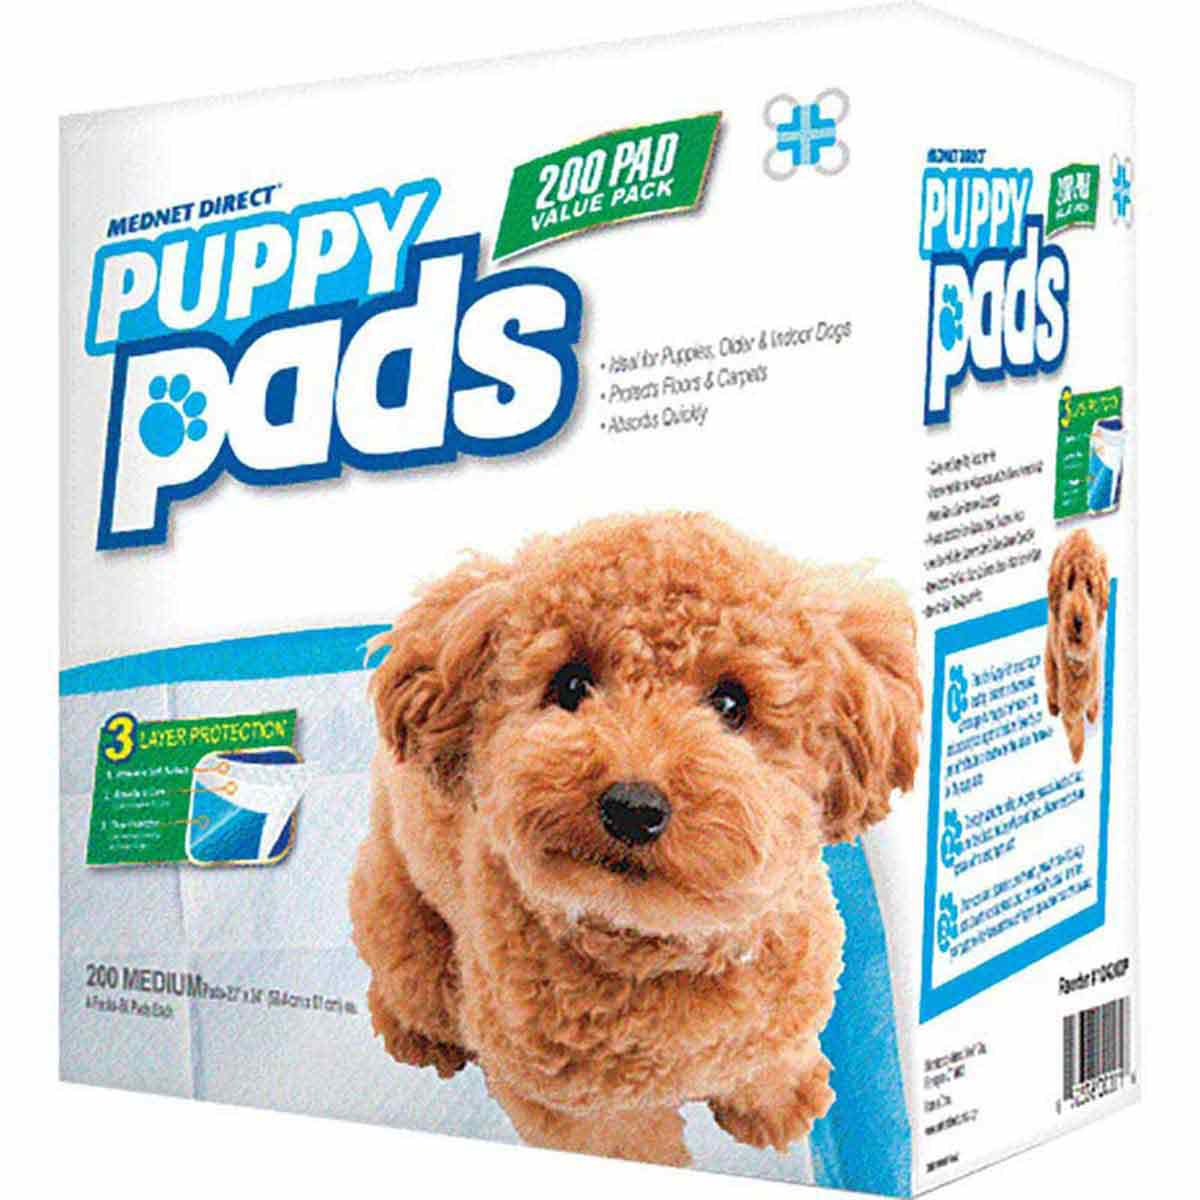 Mednet Disposable Puppy Pads 200 Medium - 23 inches by 24 inches